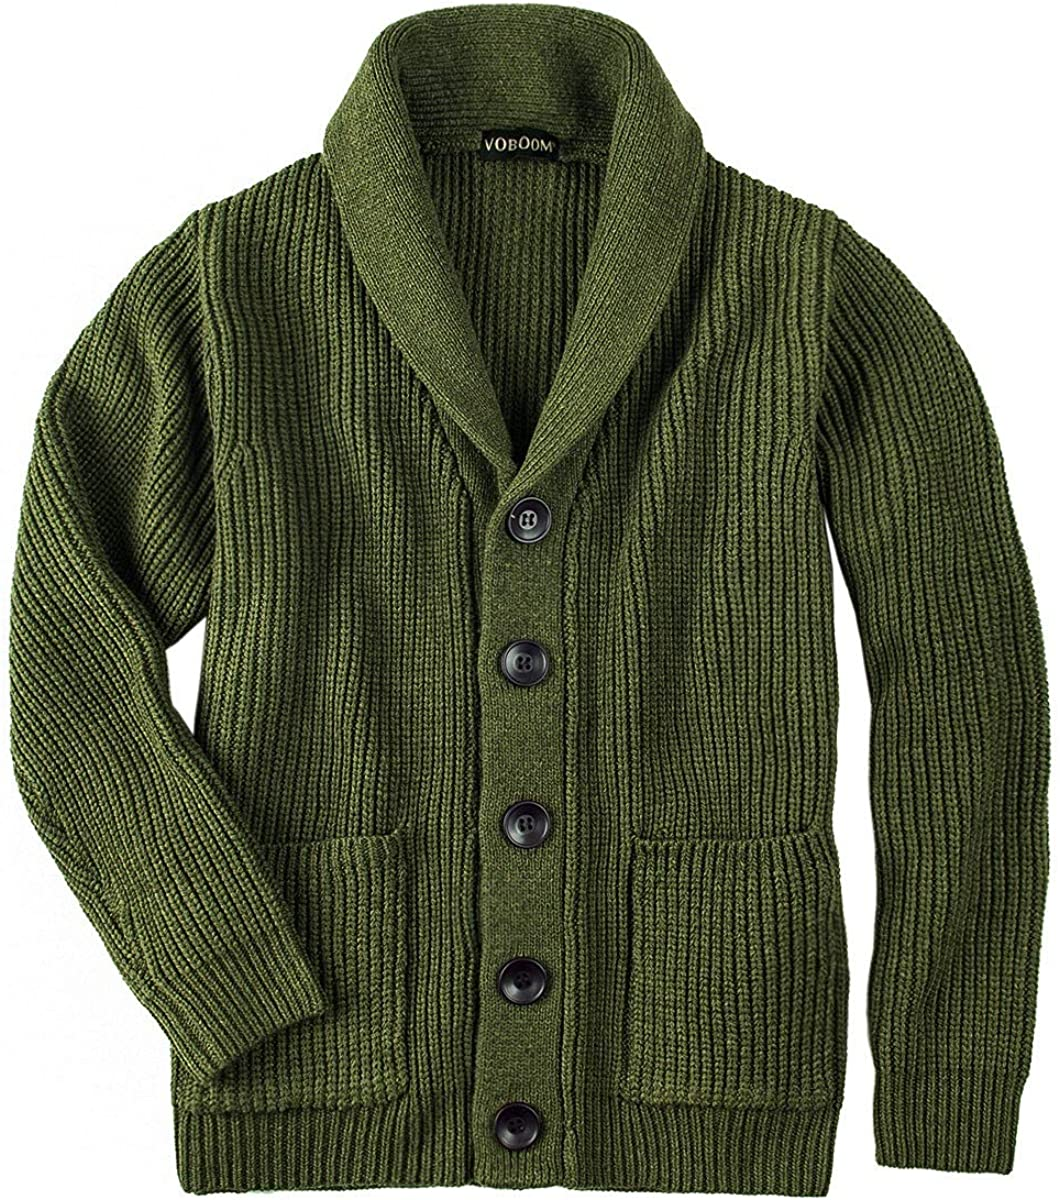 Fees free!! VOBOOM Men's SEAL limited product Knitwear Button Down Shawl Collar Cardigan Sweater